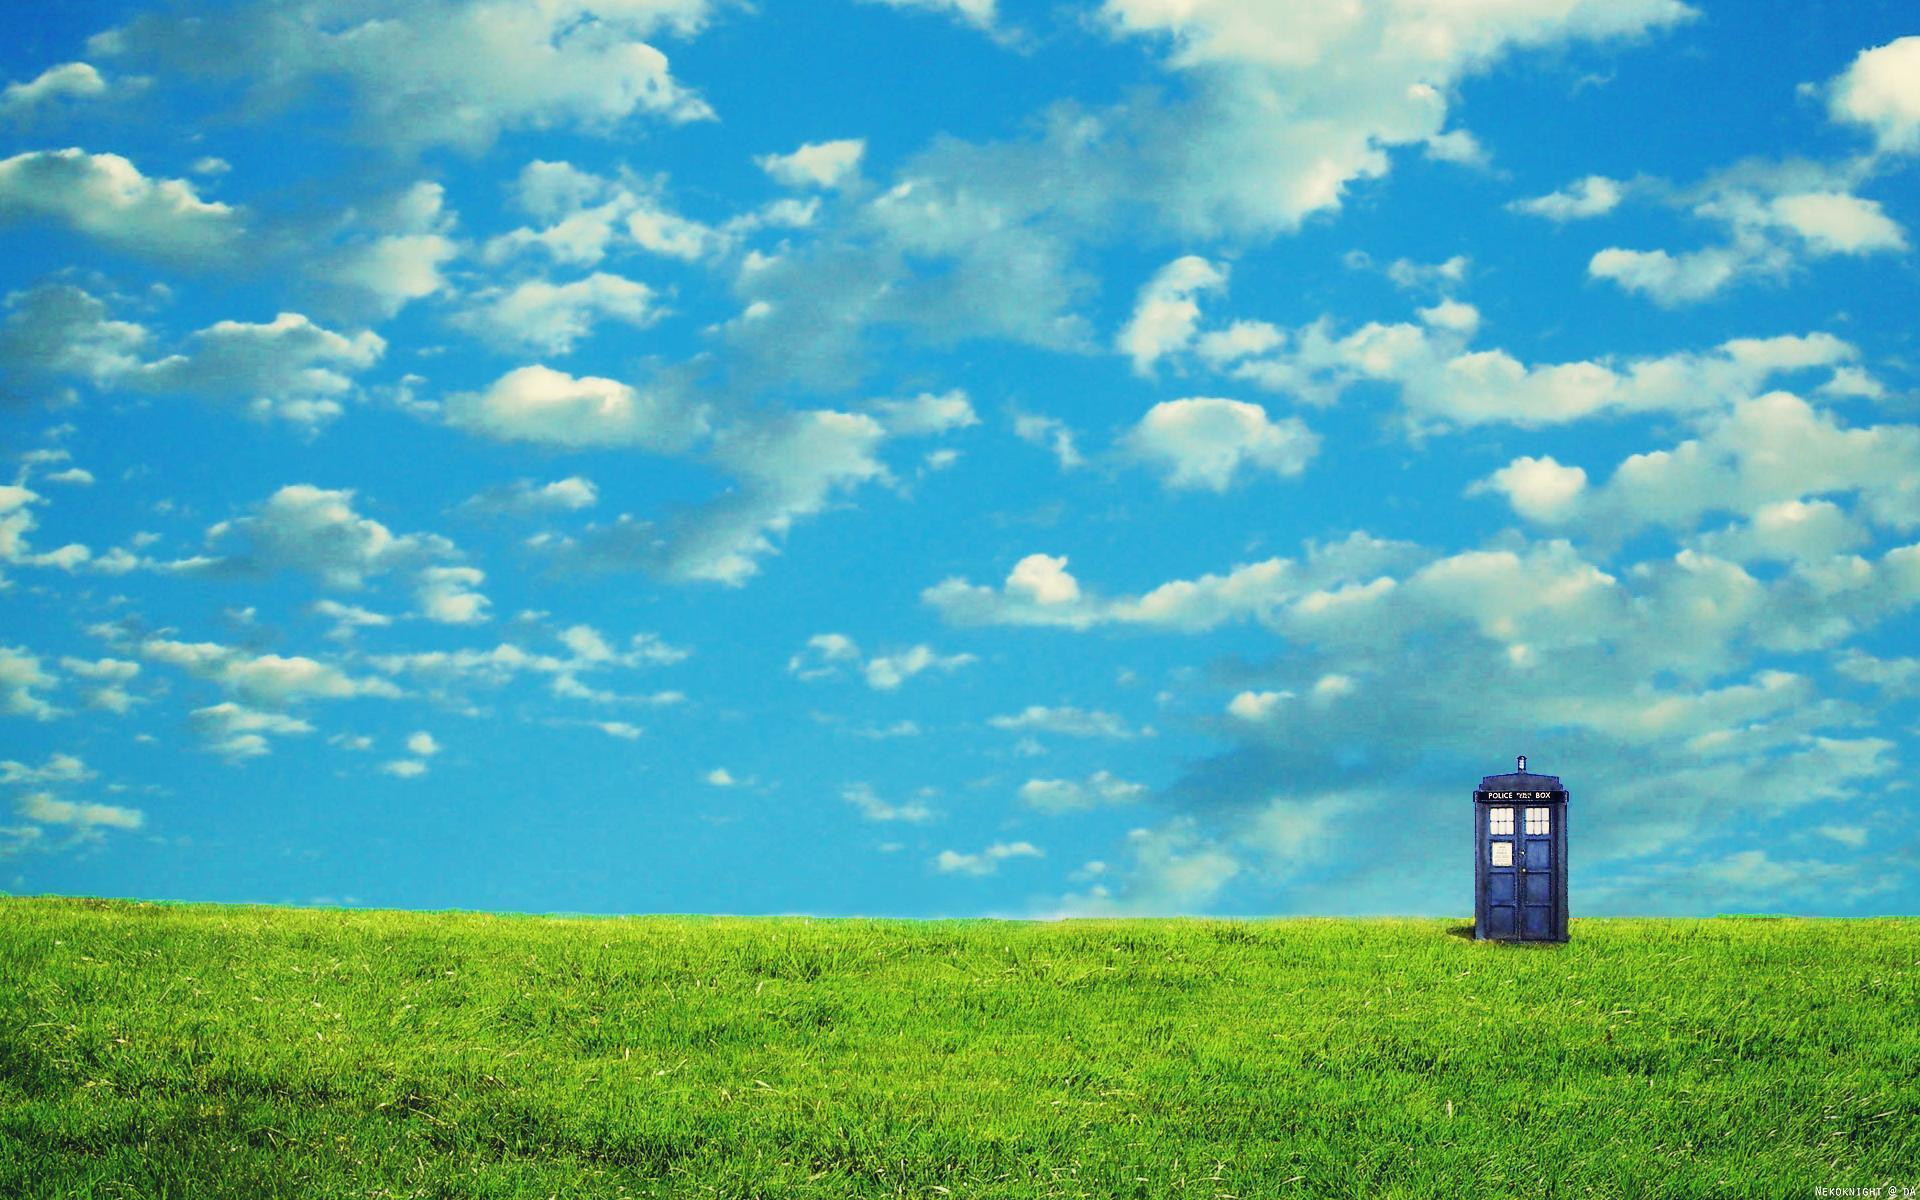 tardis images hd wallpaper - photo #17